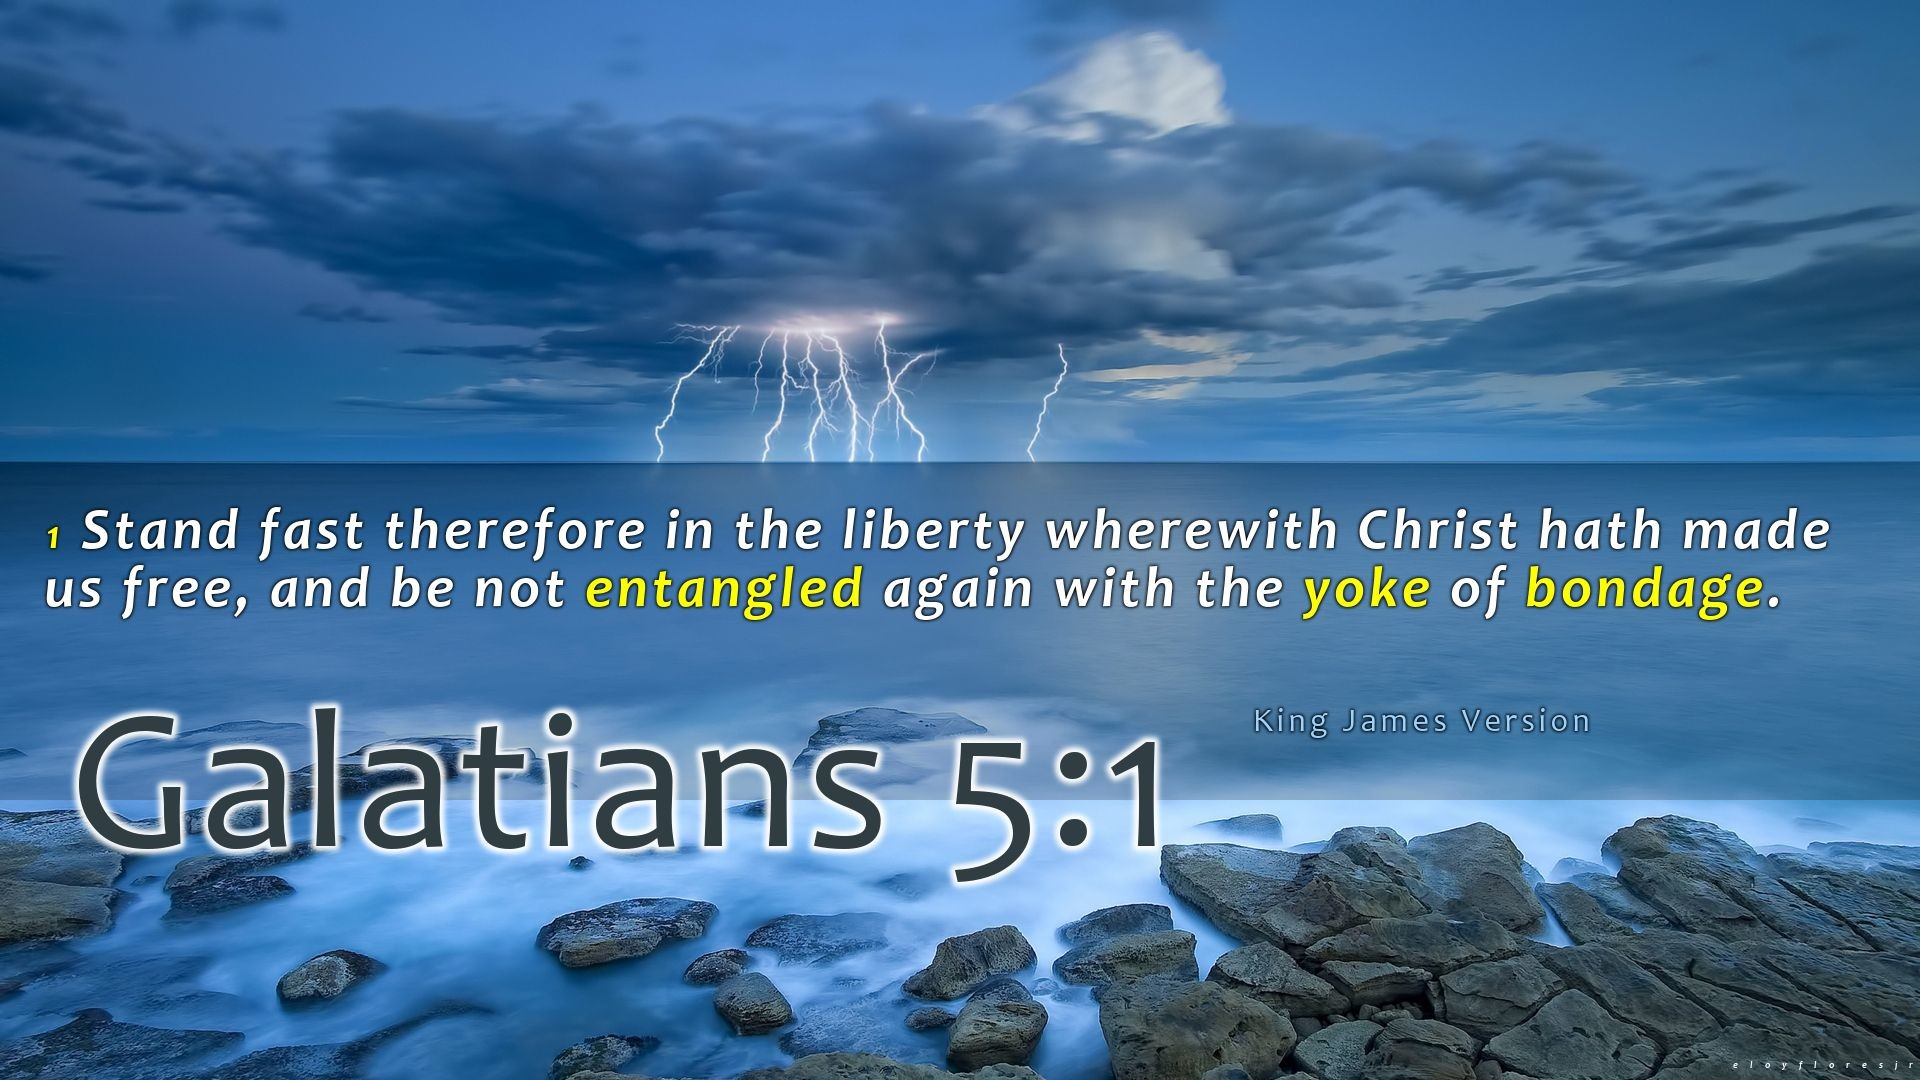 1920x1080 galatians | Galatians 5:1 Wallpaper #4475 Bible Verse Background, Proverbs  30,